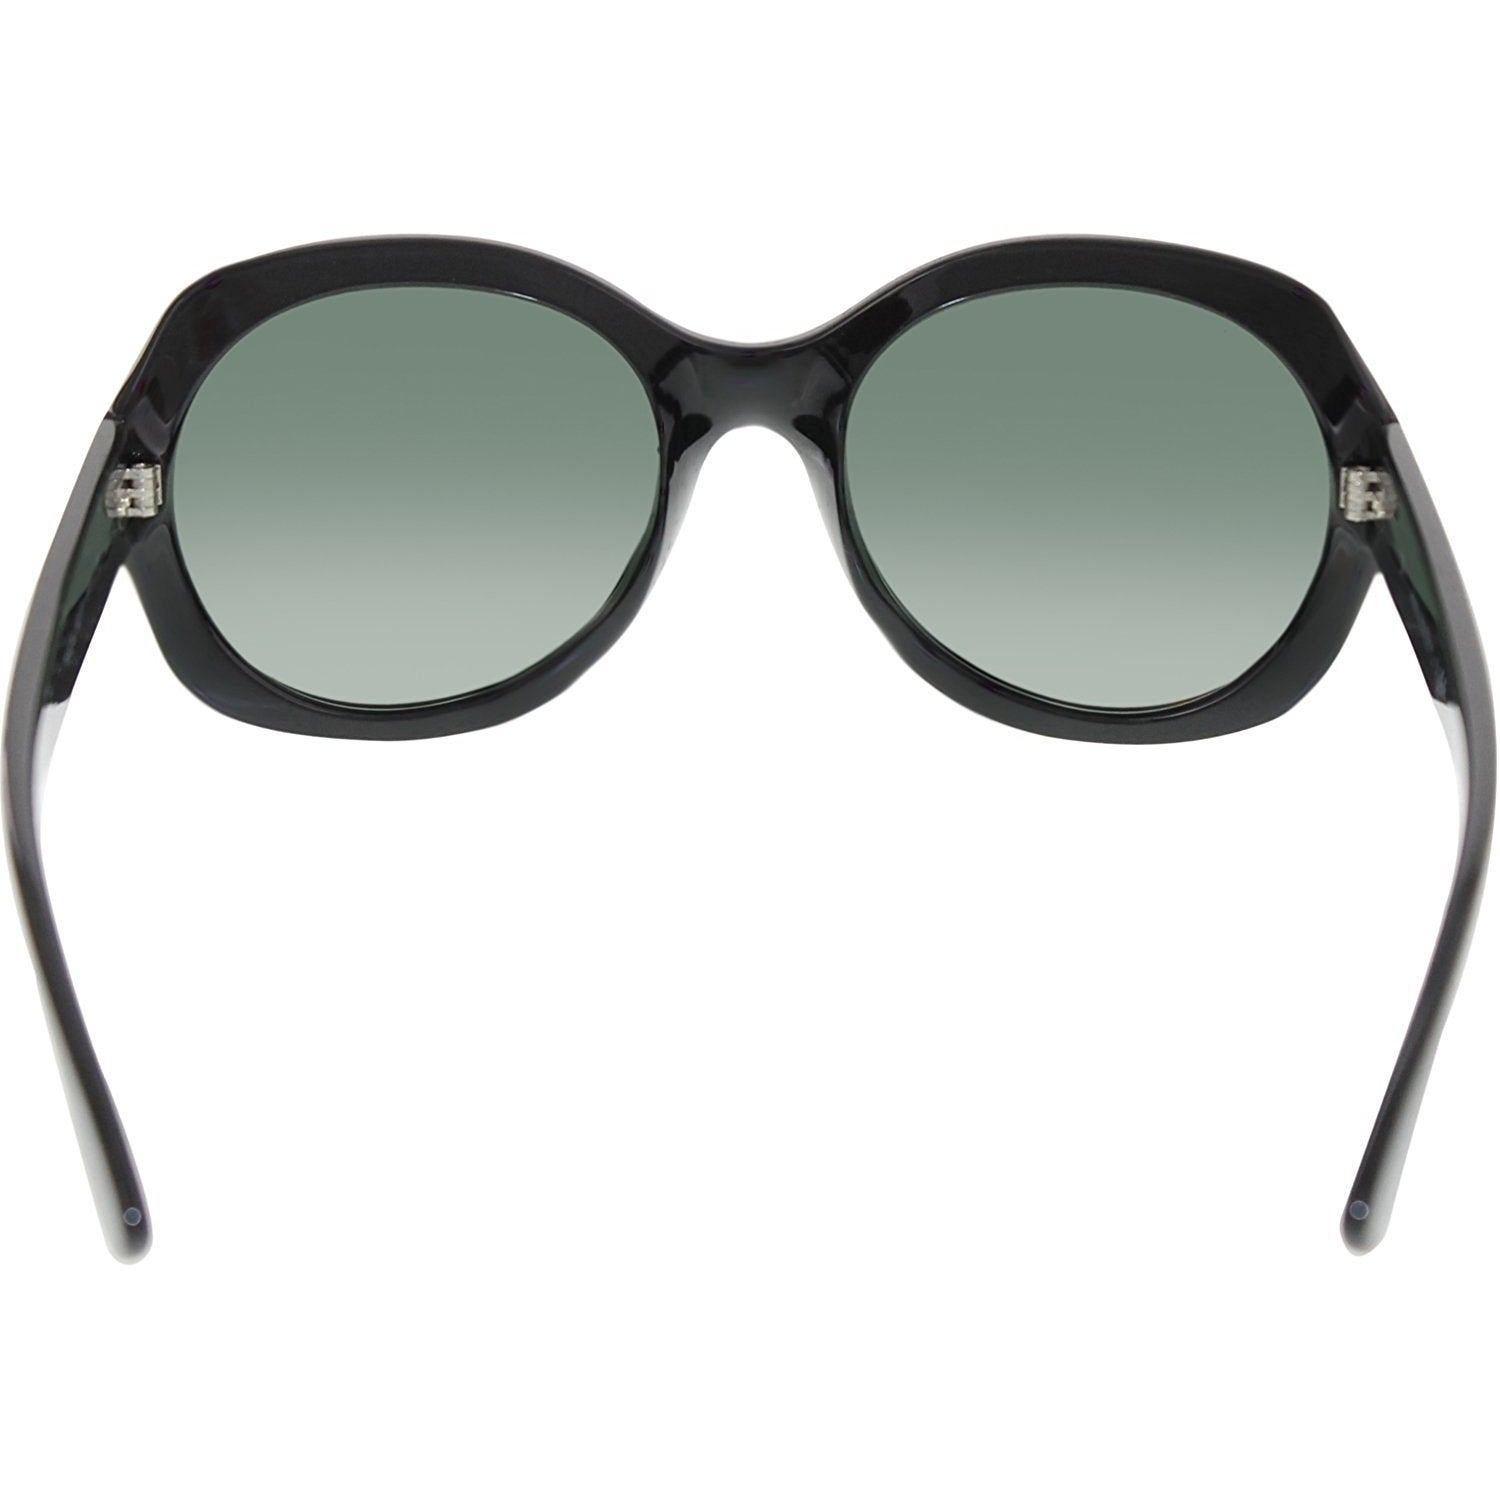 509bd70621 Shop Ray-Ban RB4191 601 71 Black Frame Green Classic 57mm Lens Sunglasses -  Free Shipping Today - Overstock - 14341491